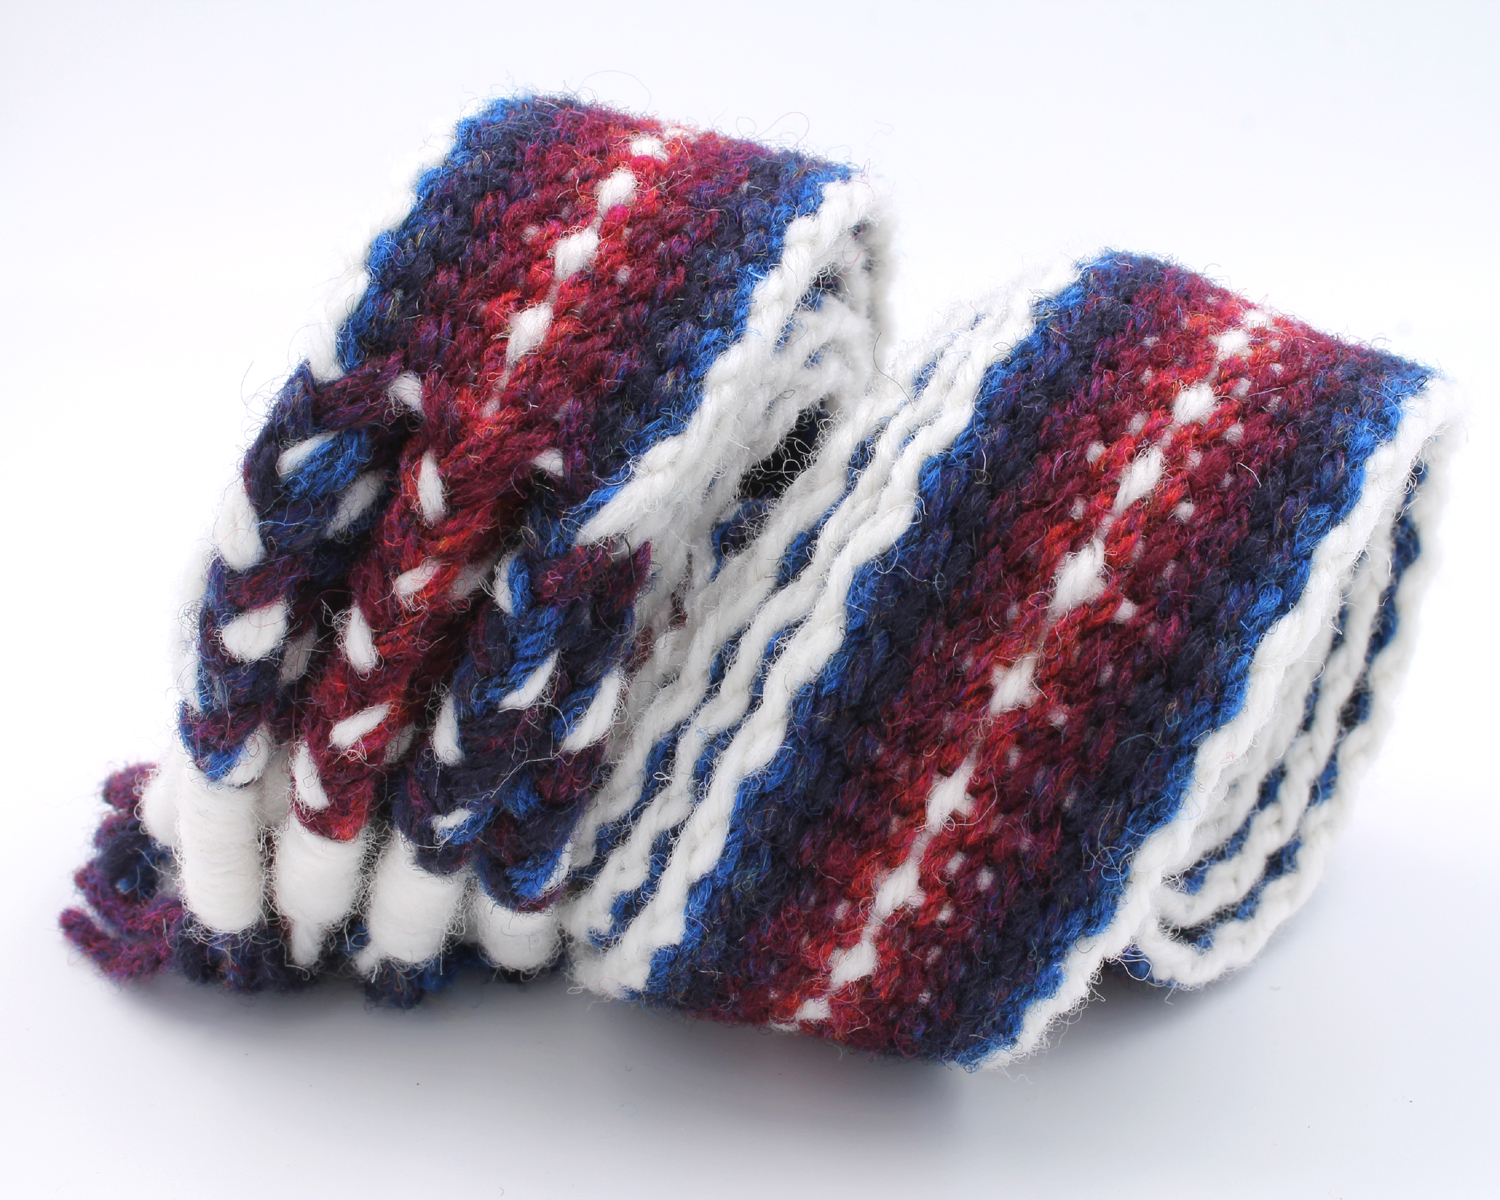 Handfasting Cord - Burgundy and Navy 1